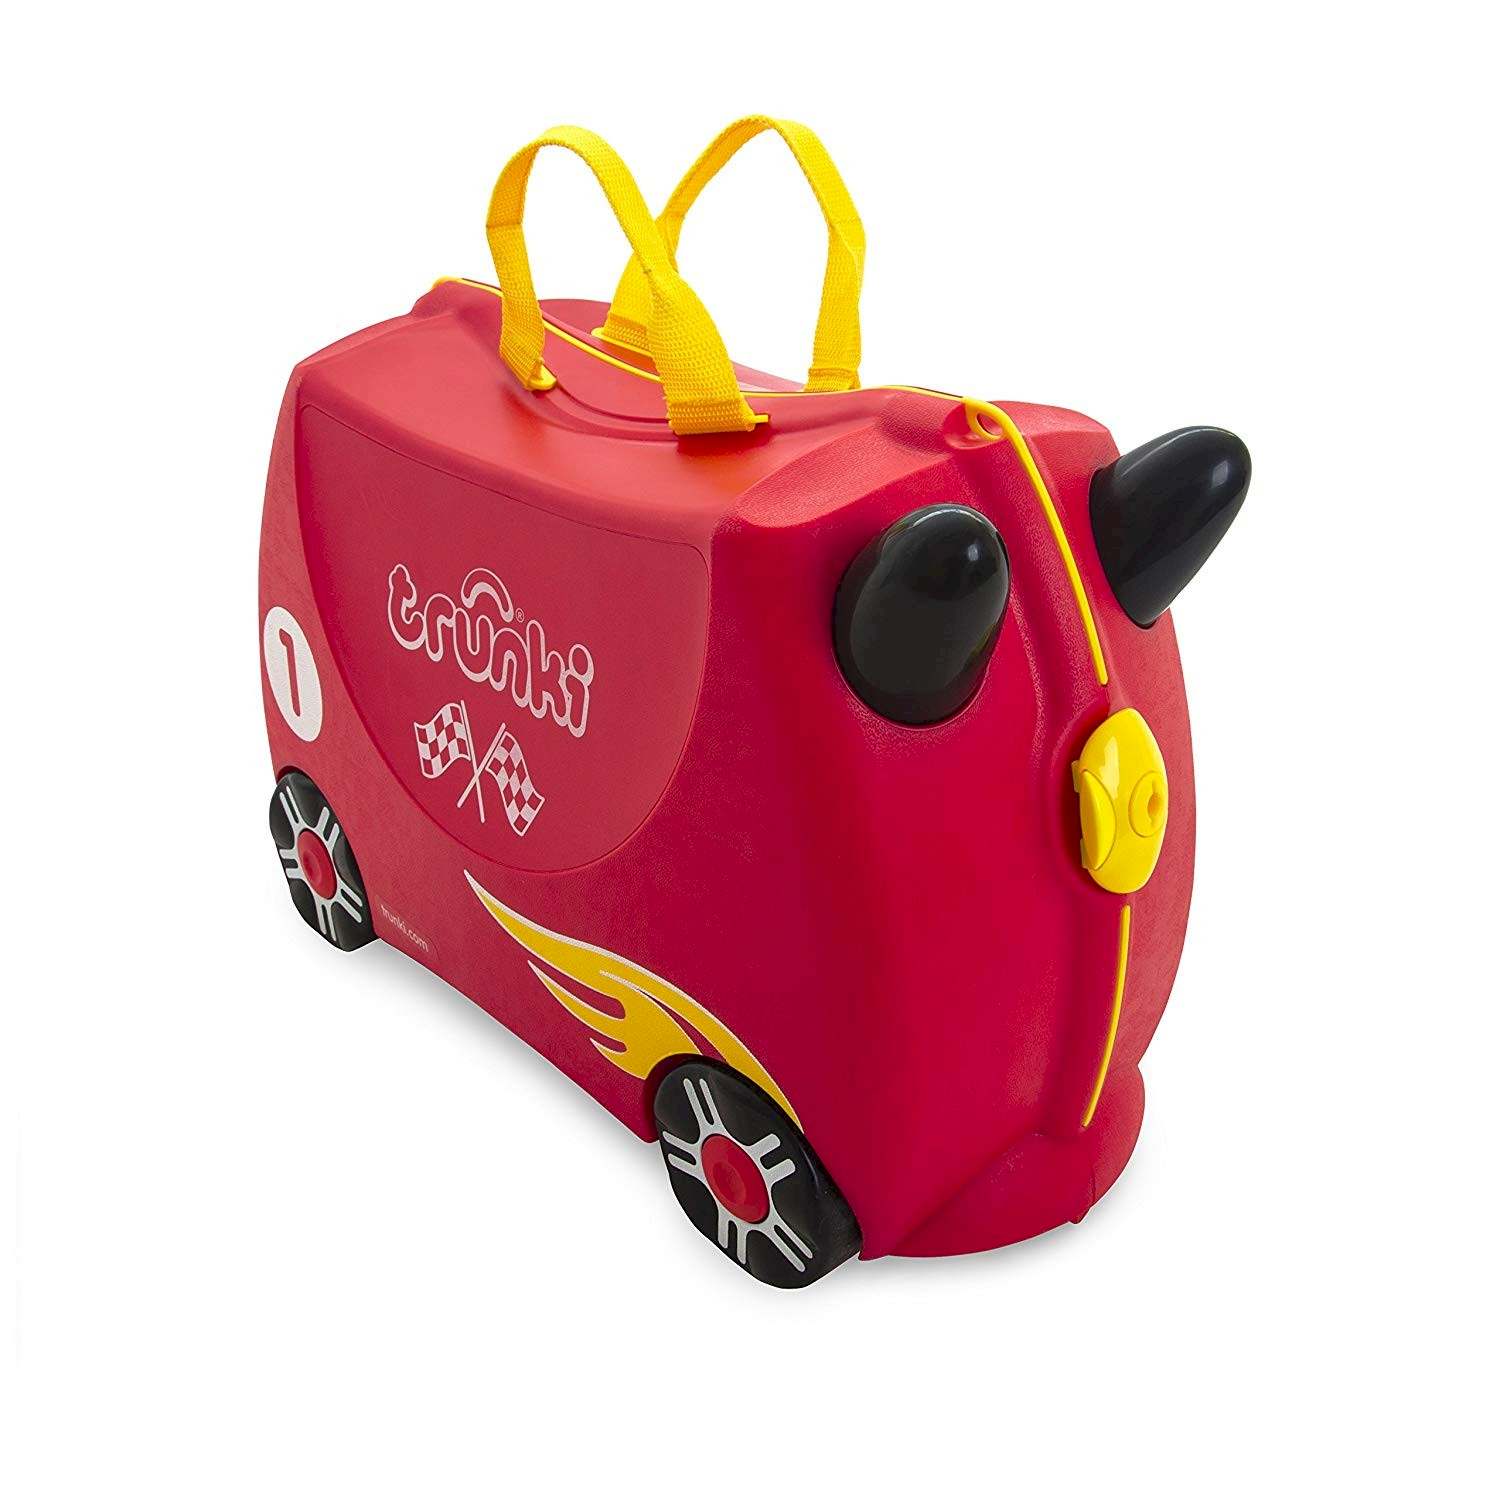 Maleta Correpasillos Trunki Race Car